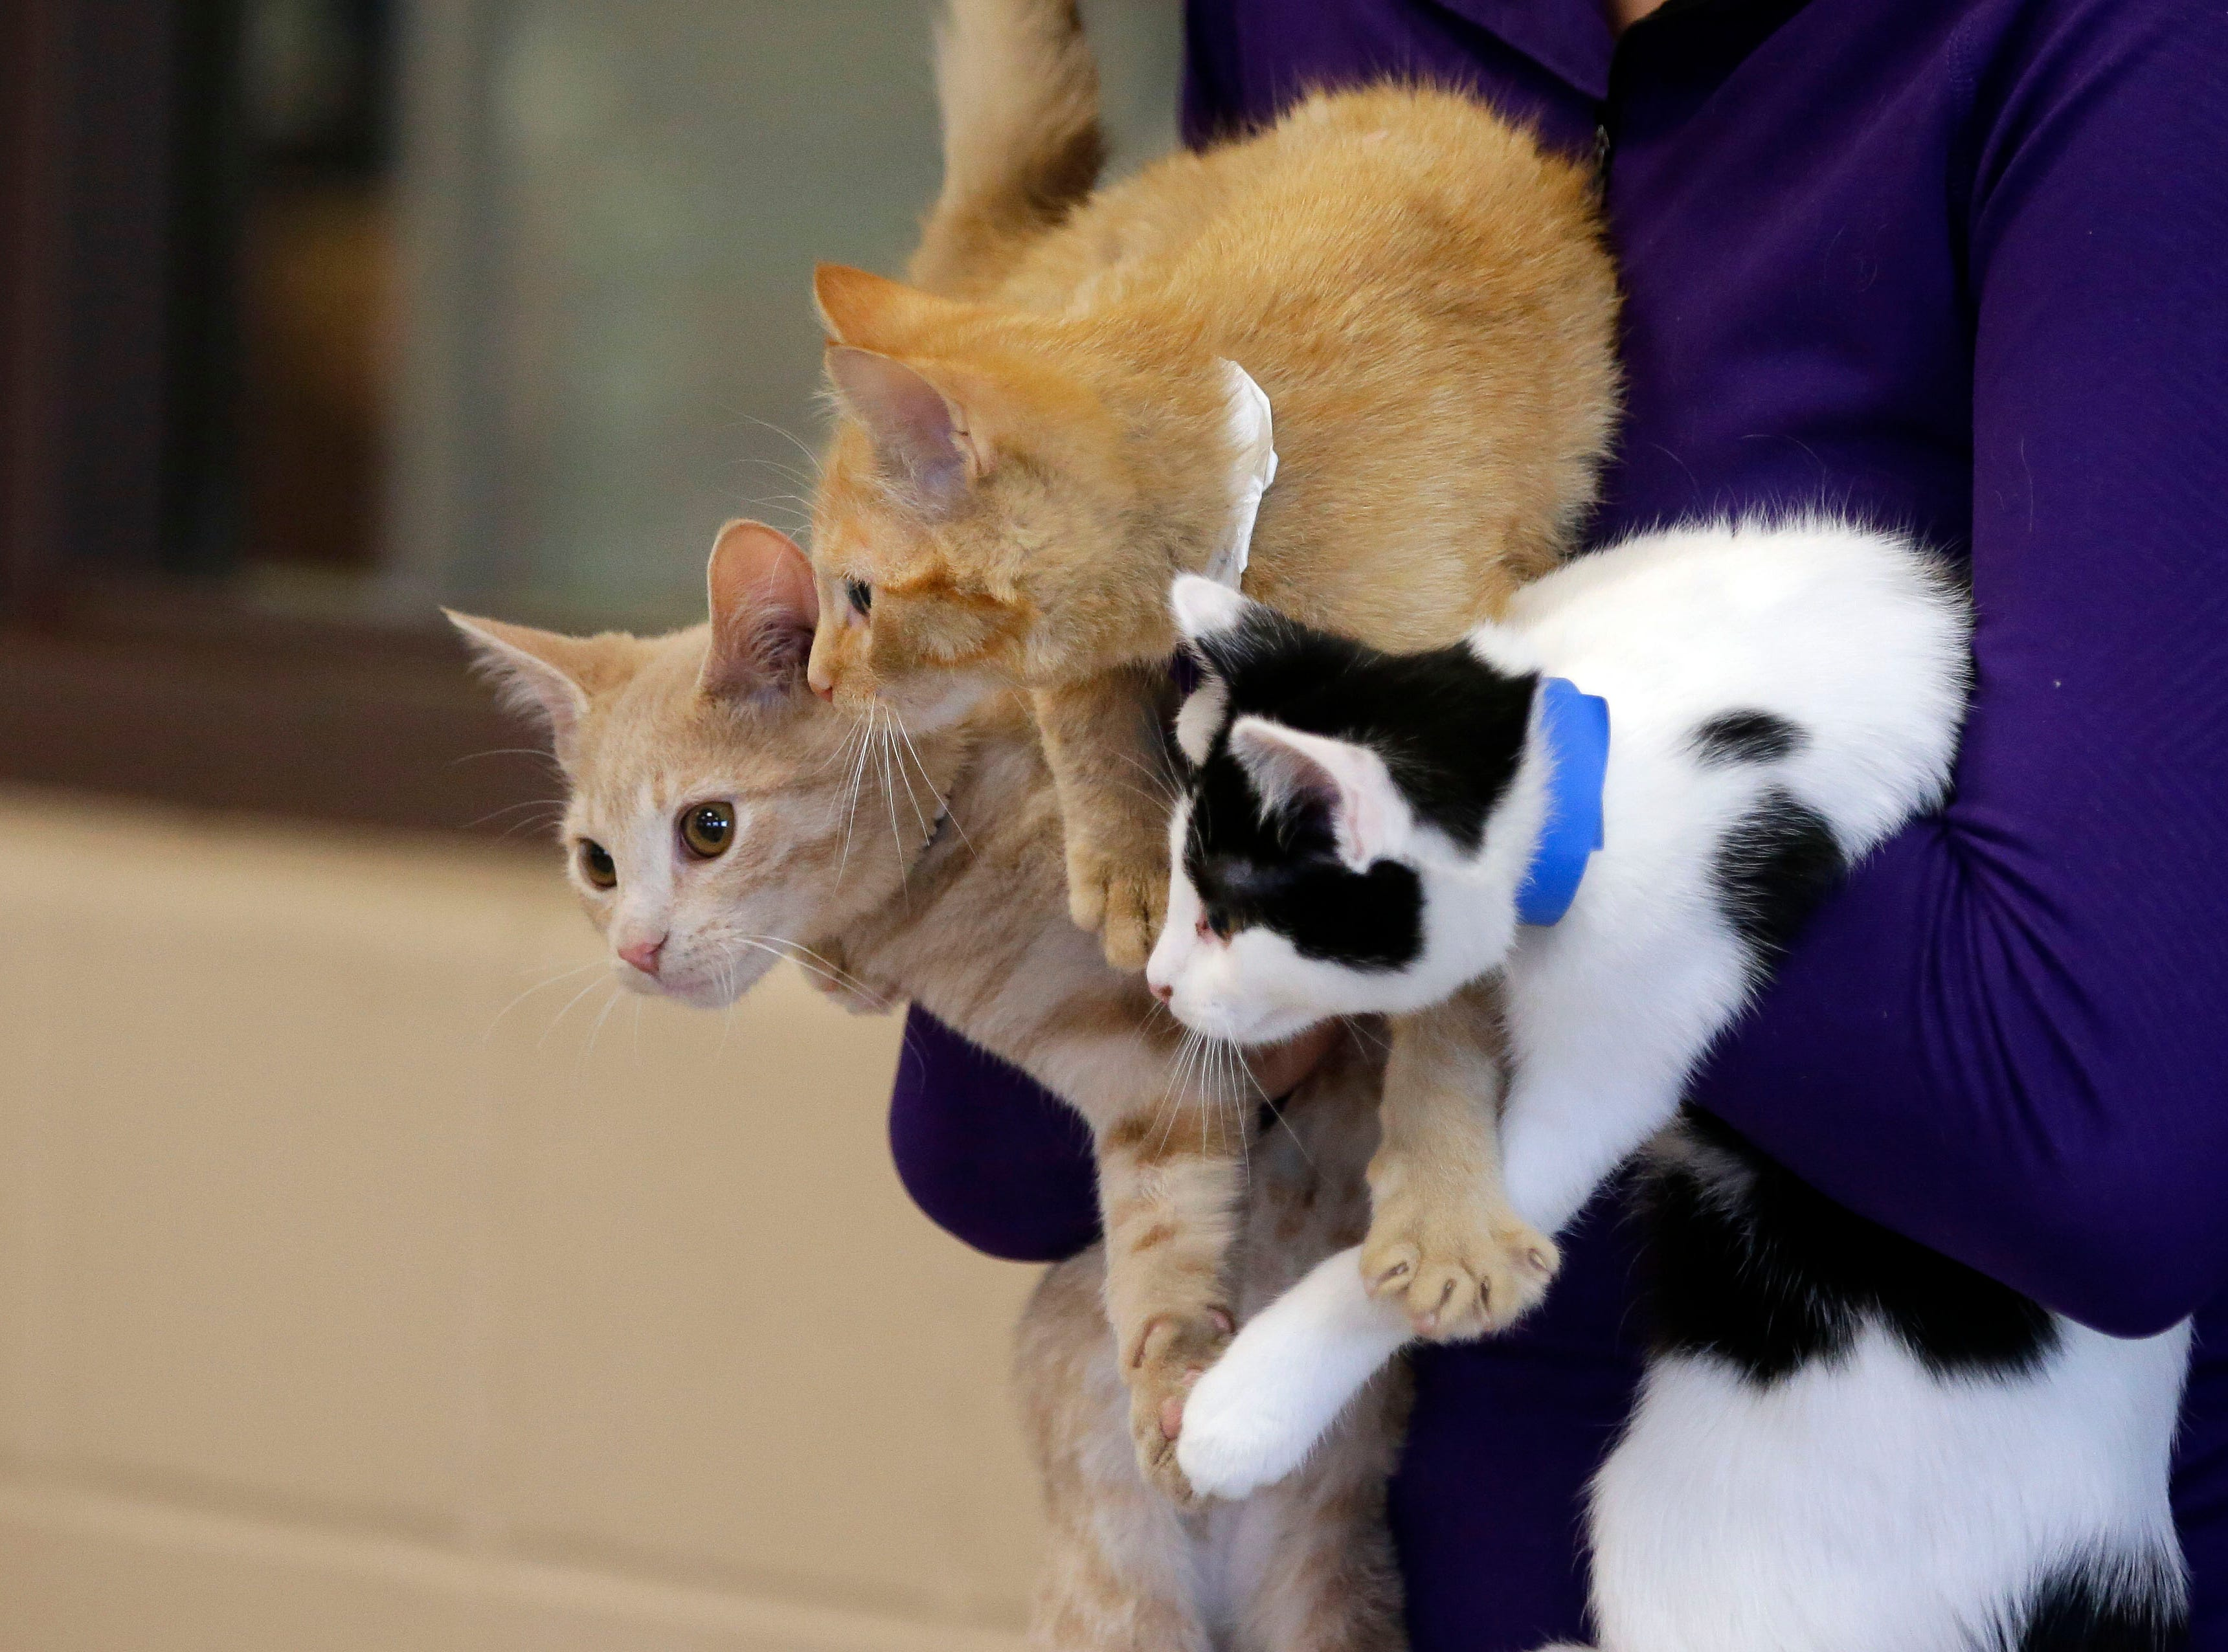 An armful of kittens arrive as the Fox Valley Humane Association and Grace Under Fire Yoga bring together adoptable kittens and yoga class for Kitten Yoga on Saturday, Oct. 13, 2018, at the Fox Valley Humane Association in Appleton, Wis.